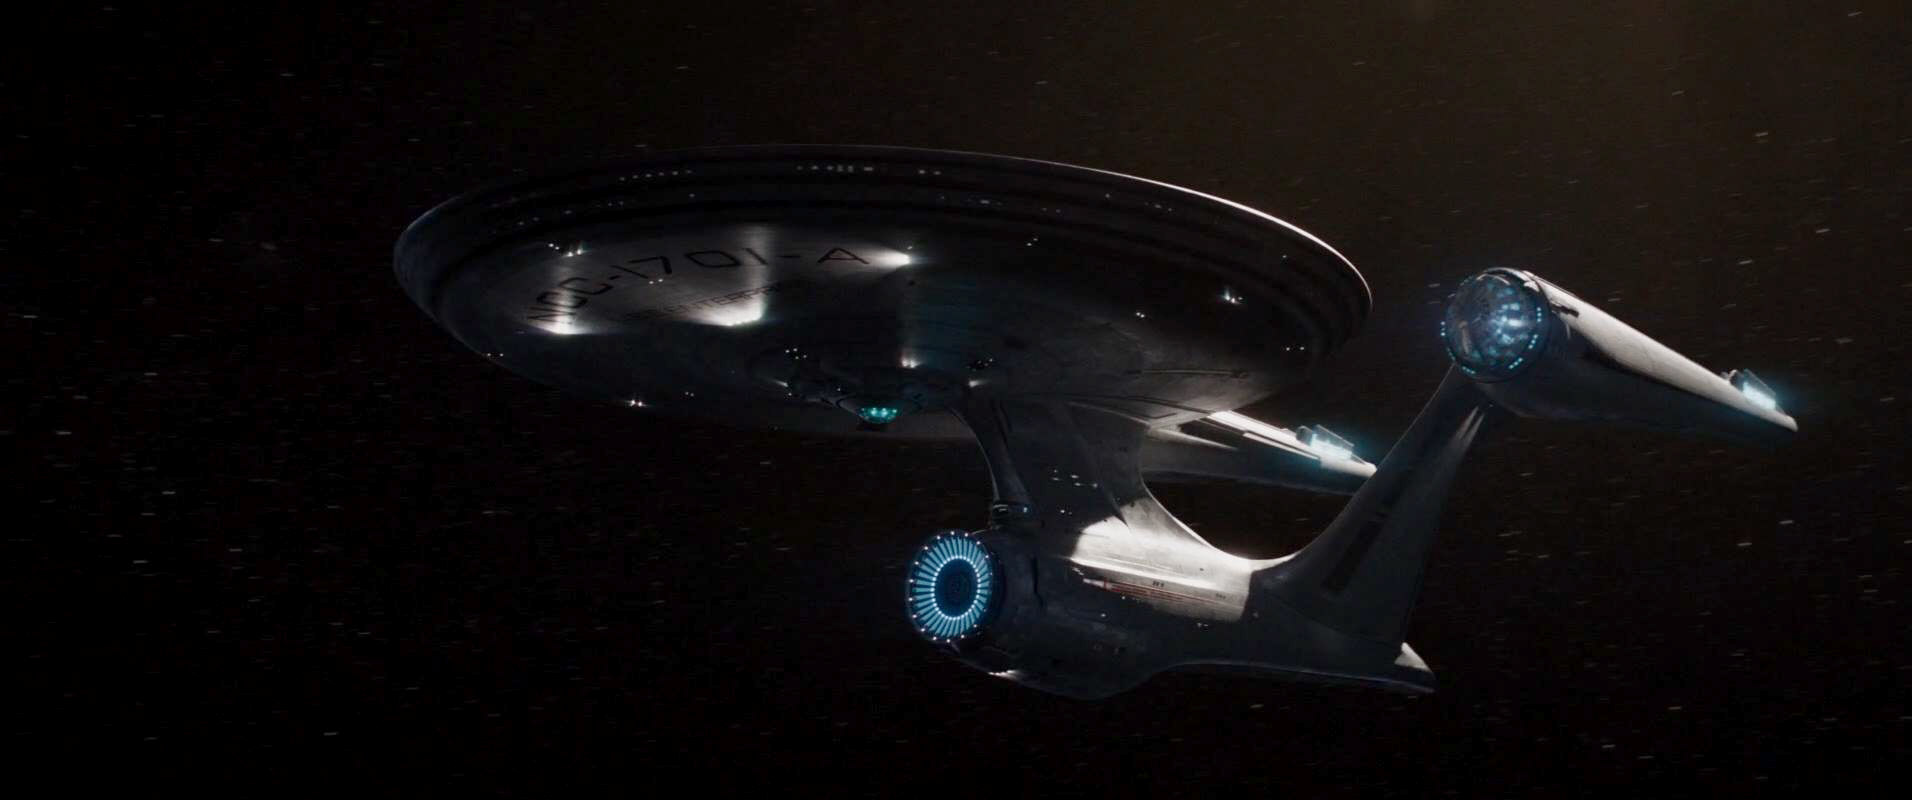 Frontier Final Enterprise Uss